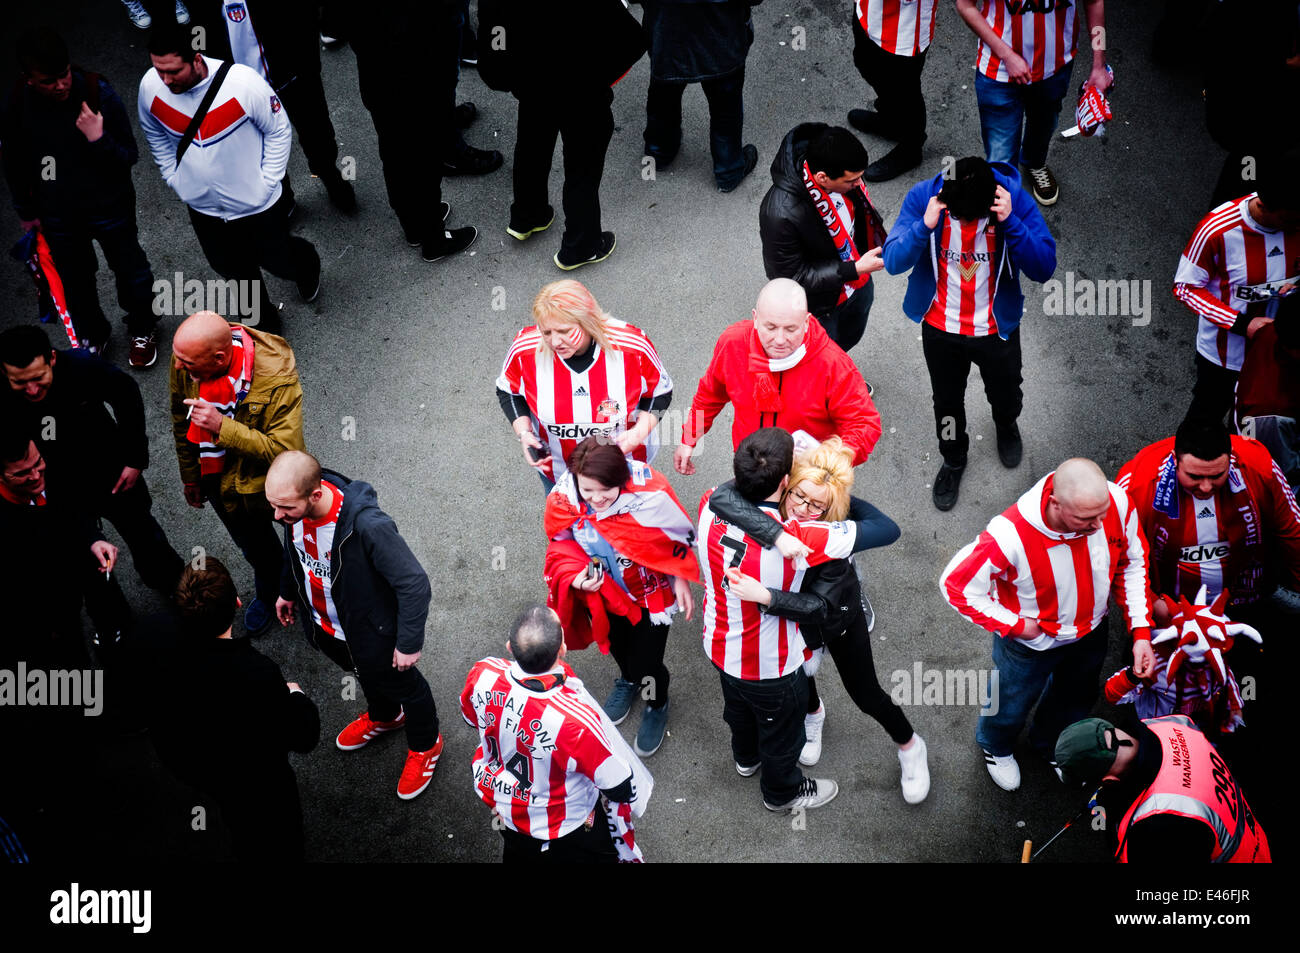 Sunderland football fans hug each other before watching their team take on Manchester City at Wembley in the 2014 - Stock Image